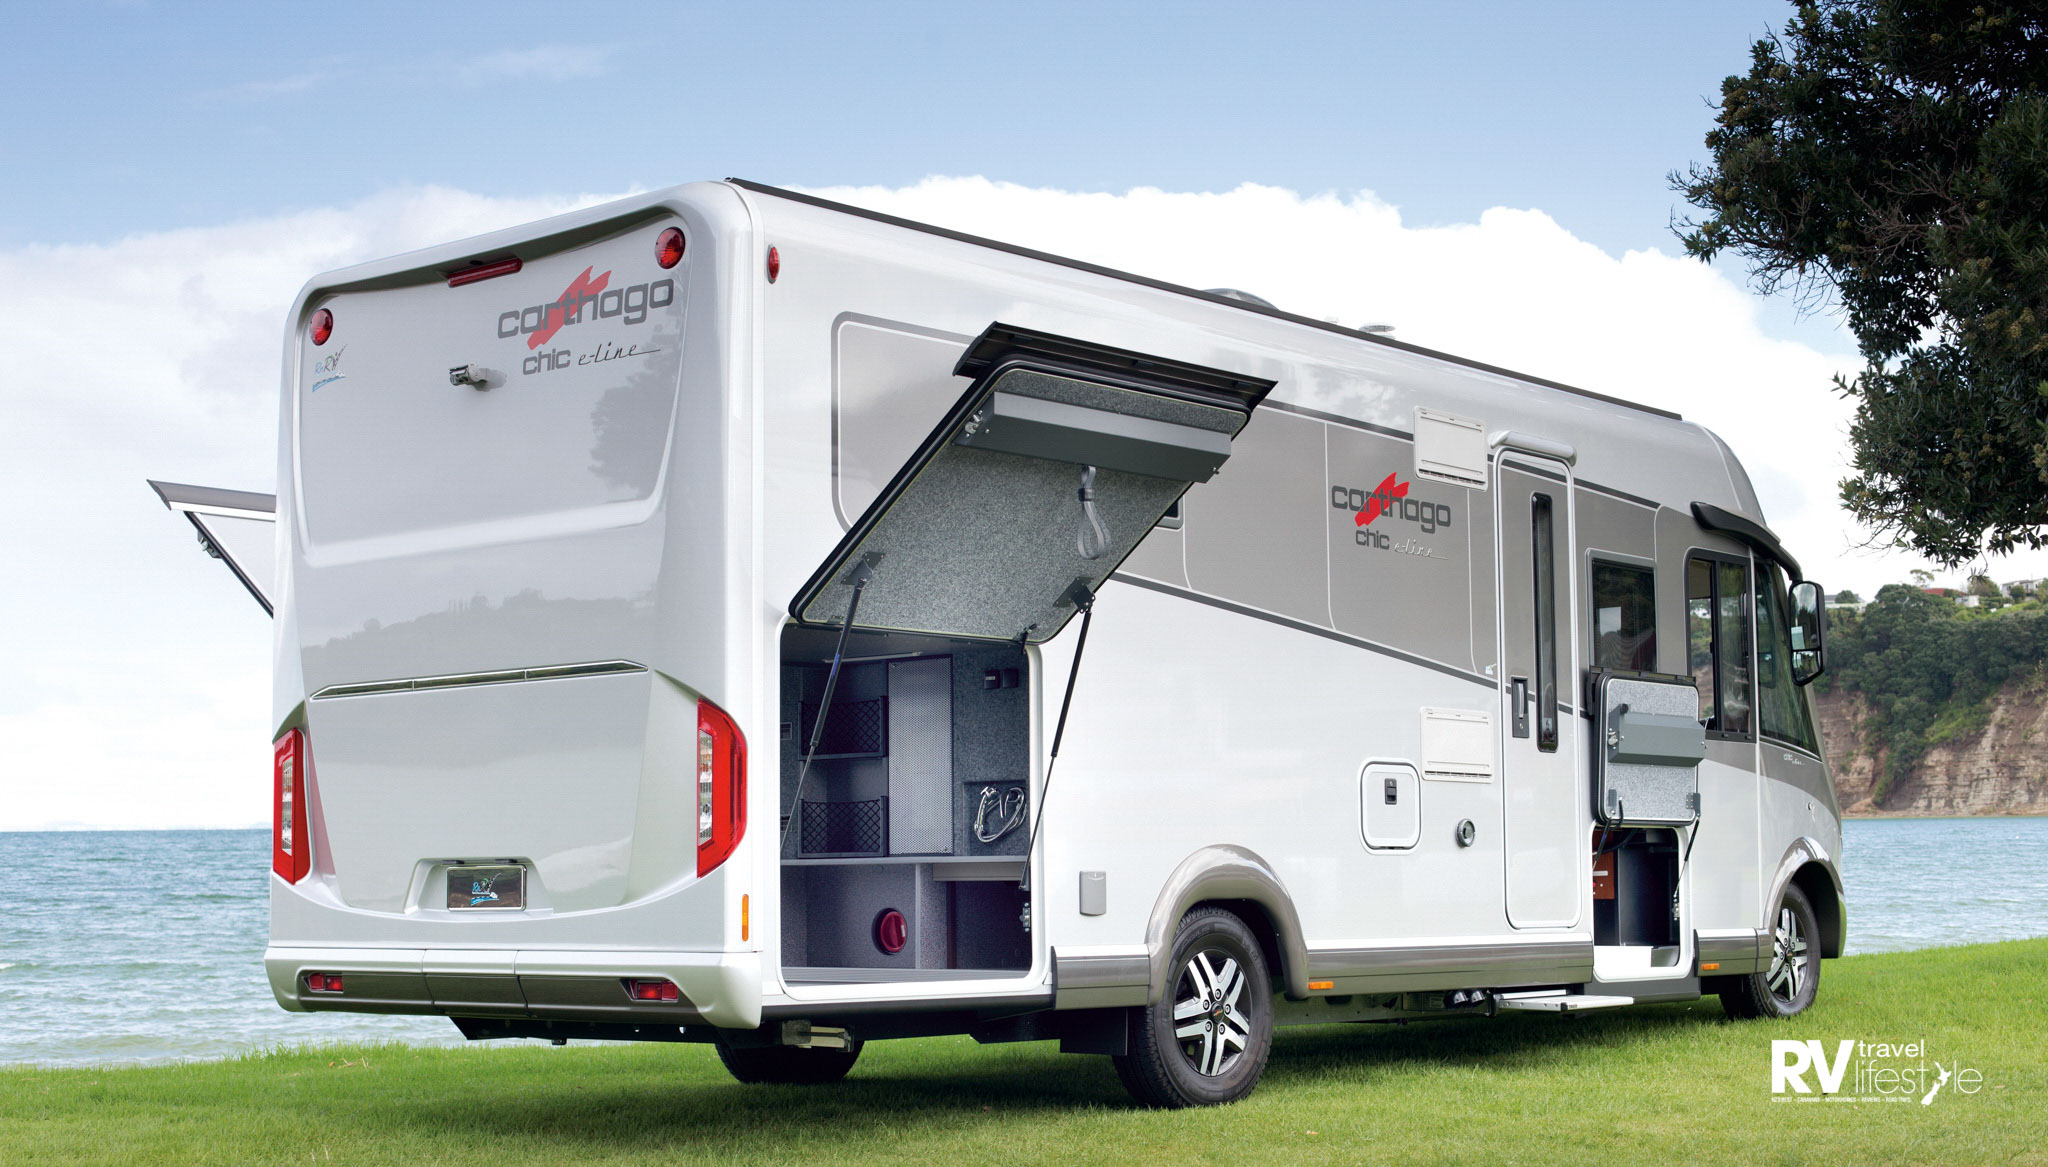 Huge storage in this E-line – the rear garage interior height is 1120mm and is accessible through doors on both sides. Doors lift up easily on gas struts and lock open as required